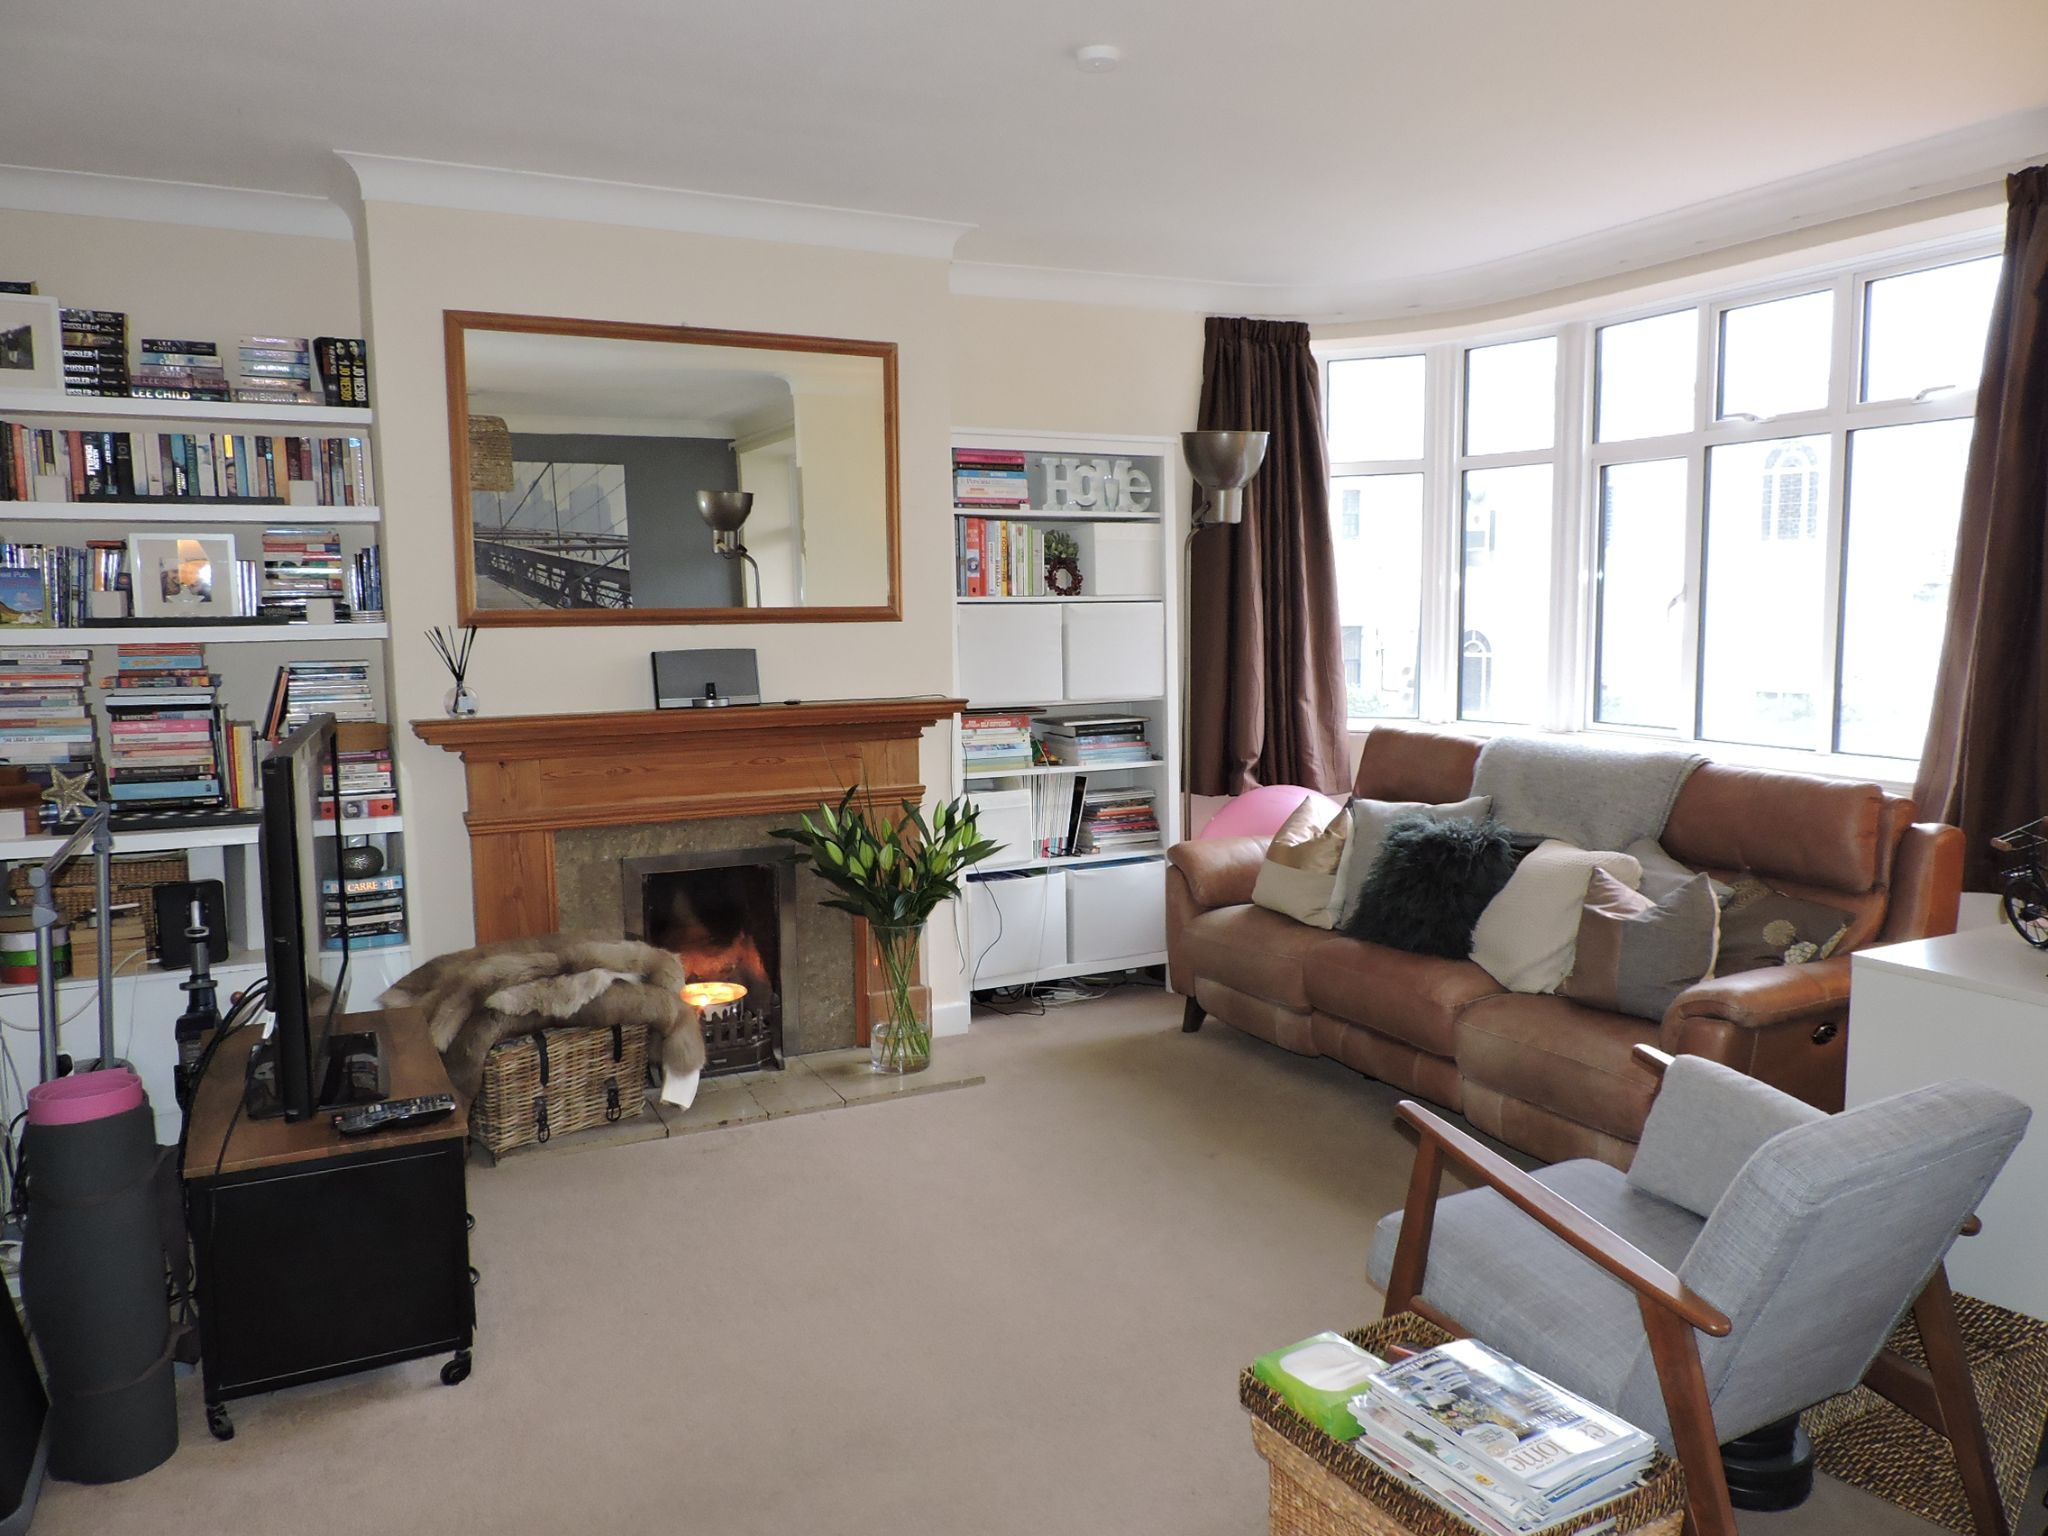 2 bedroom flat flat/apartment For Sale in Surbiton - Photograph 3